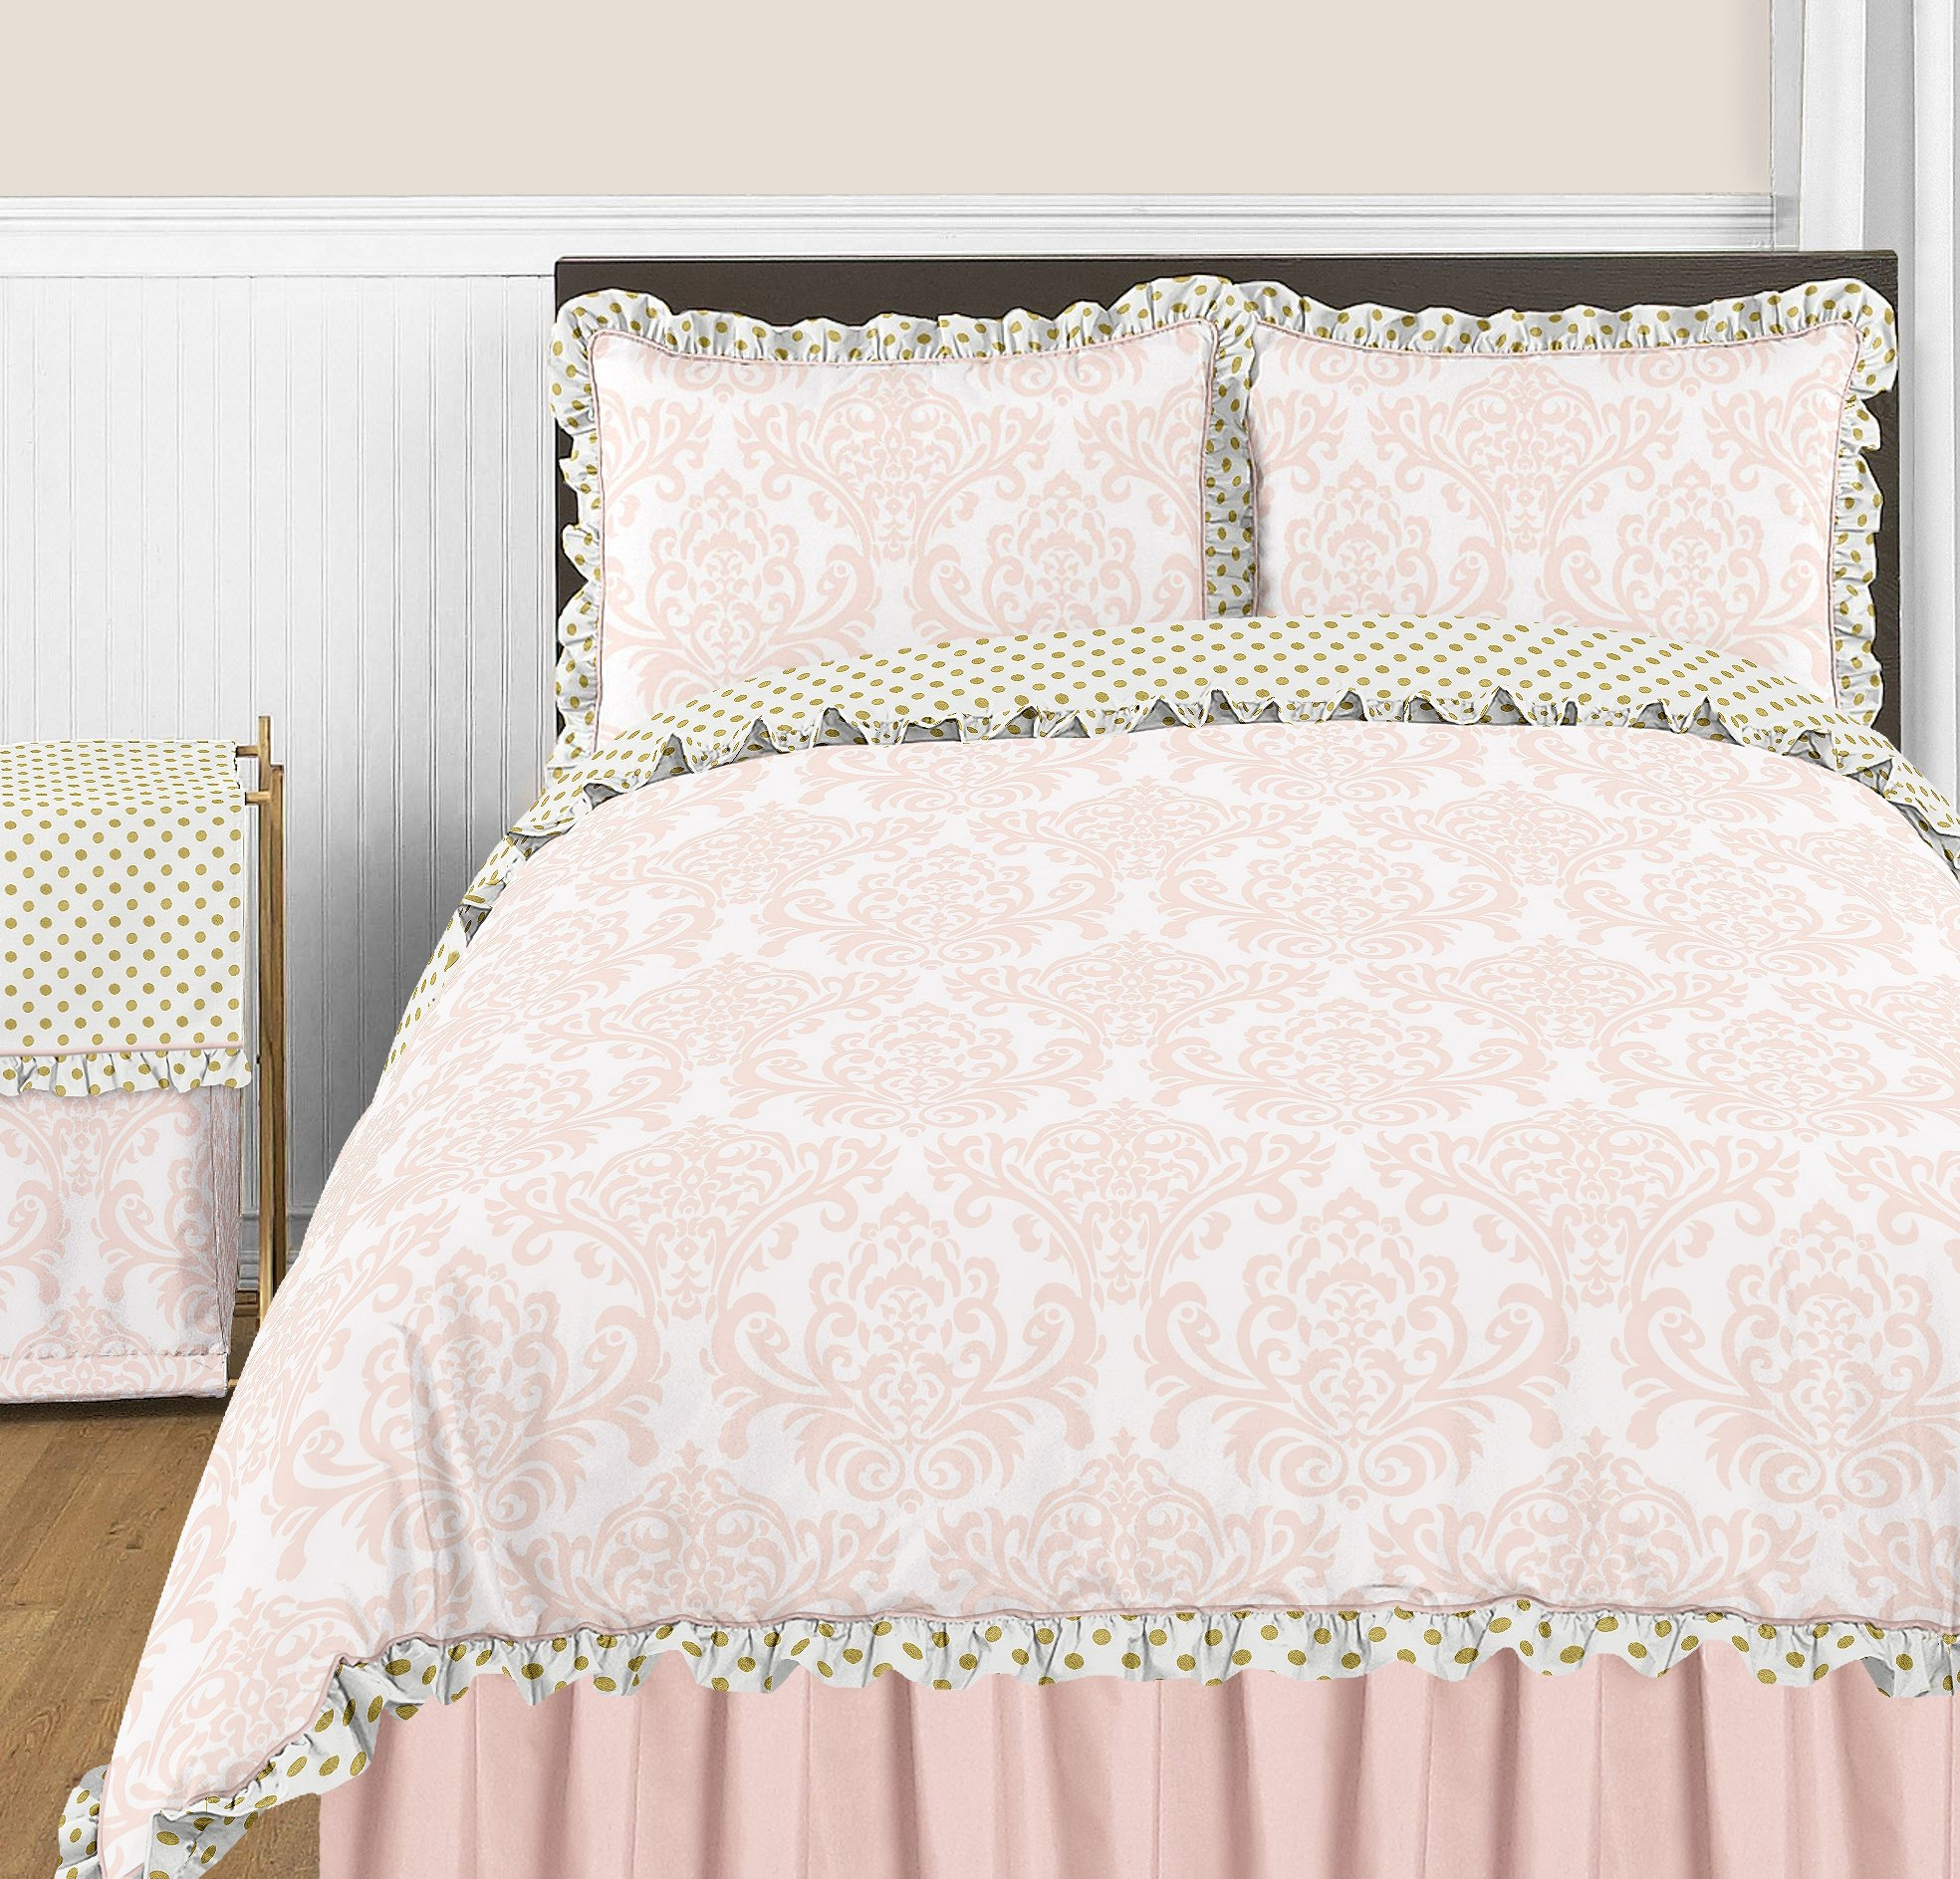 Sweet Jojo Designs Blush Pink Queen Bed Skirt for Girls Amelia Collection Bedding Sets by Sweet Jojo Designs (Image #2)